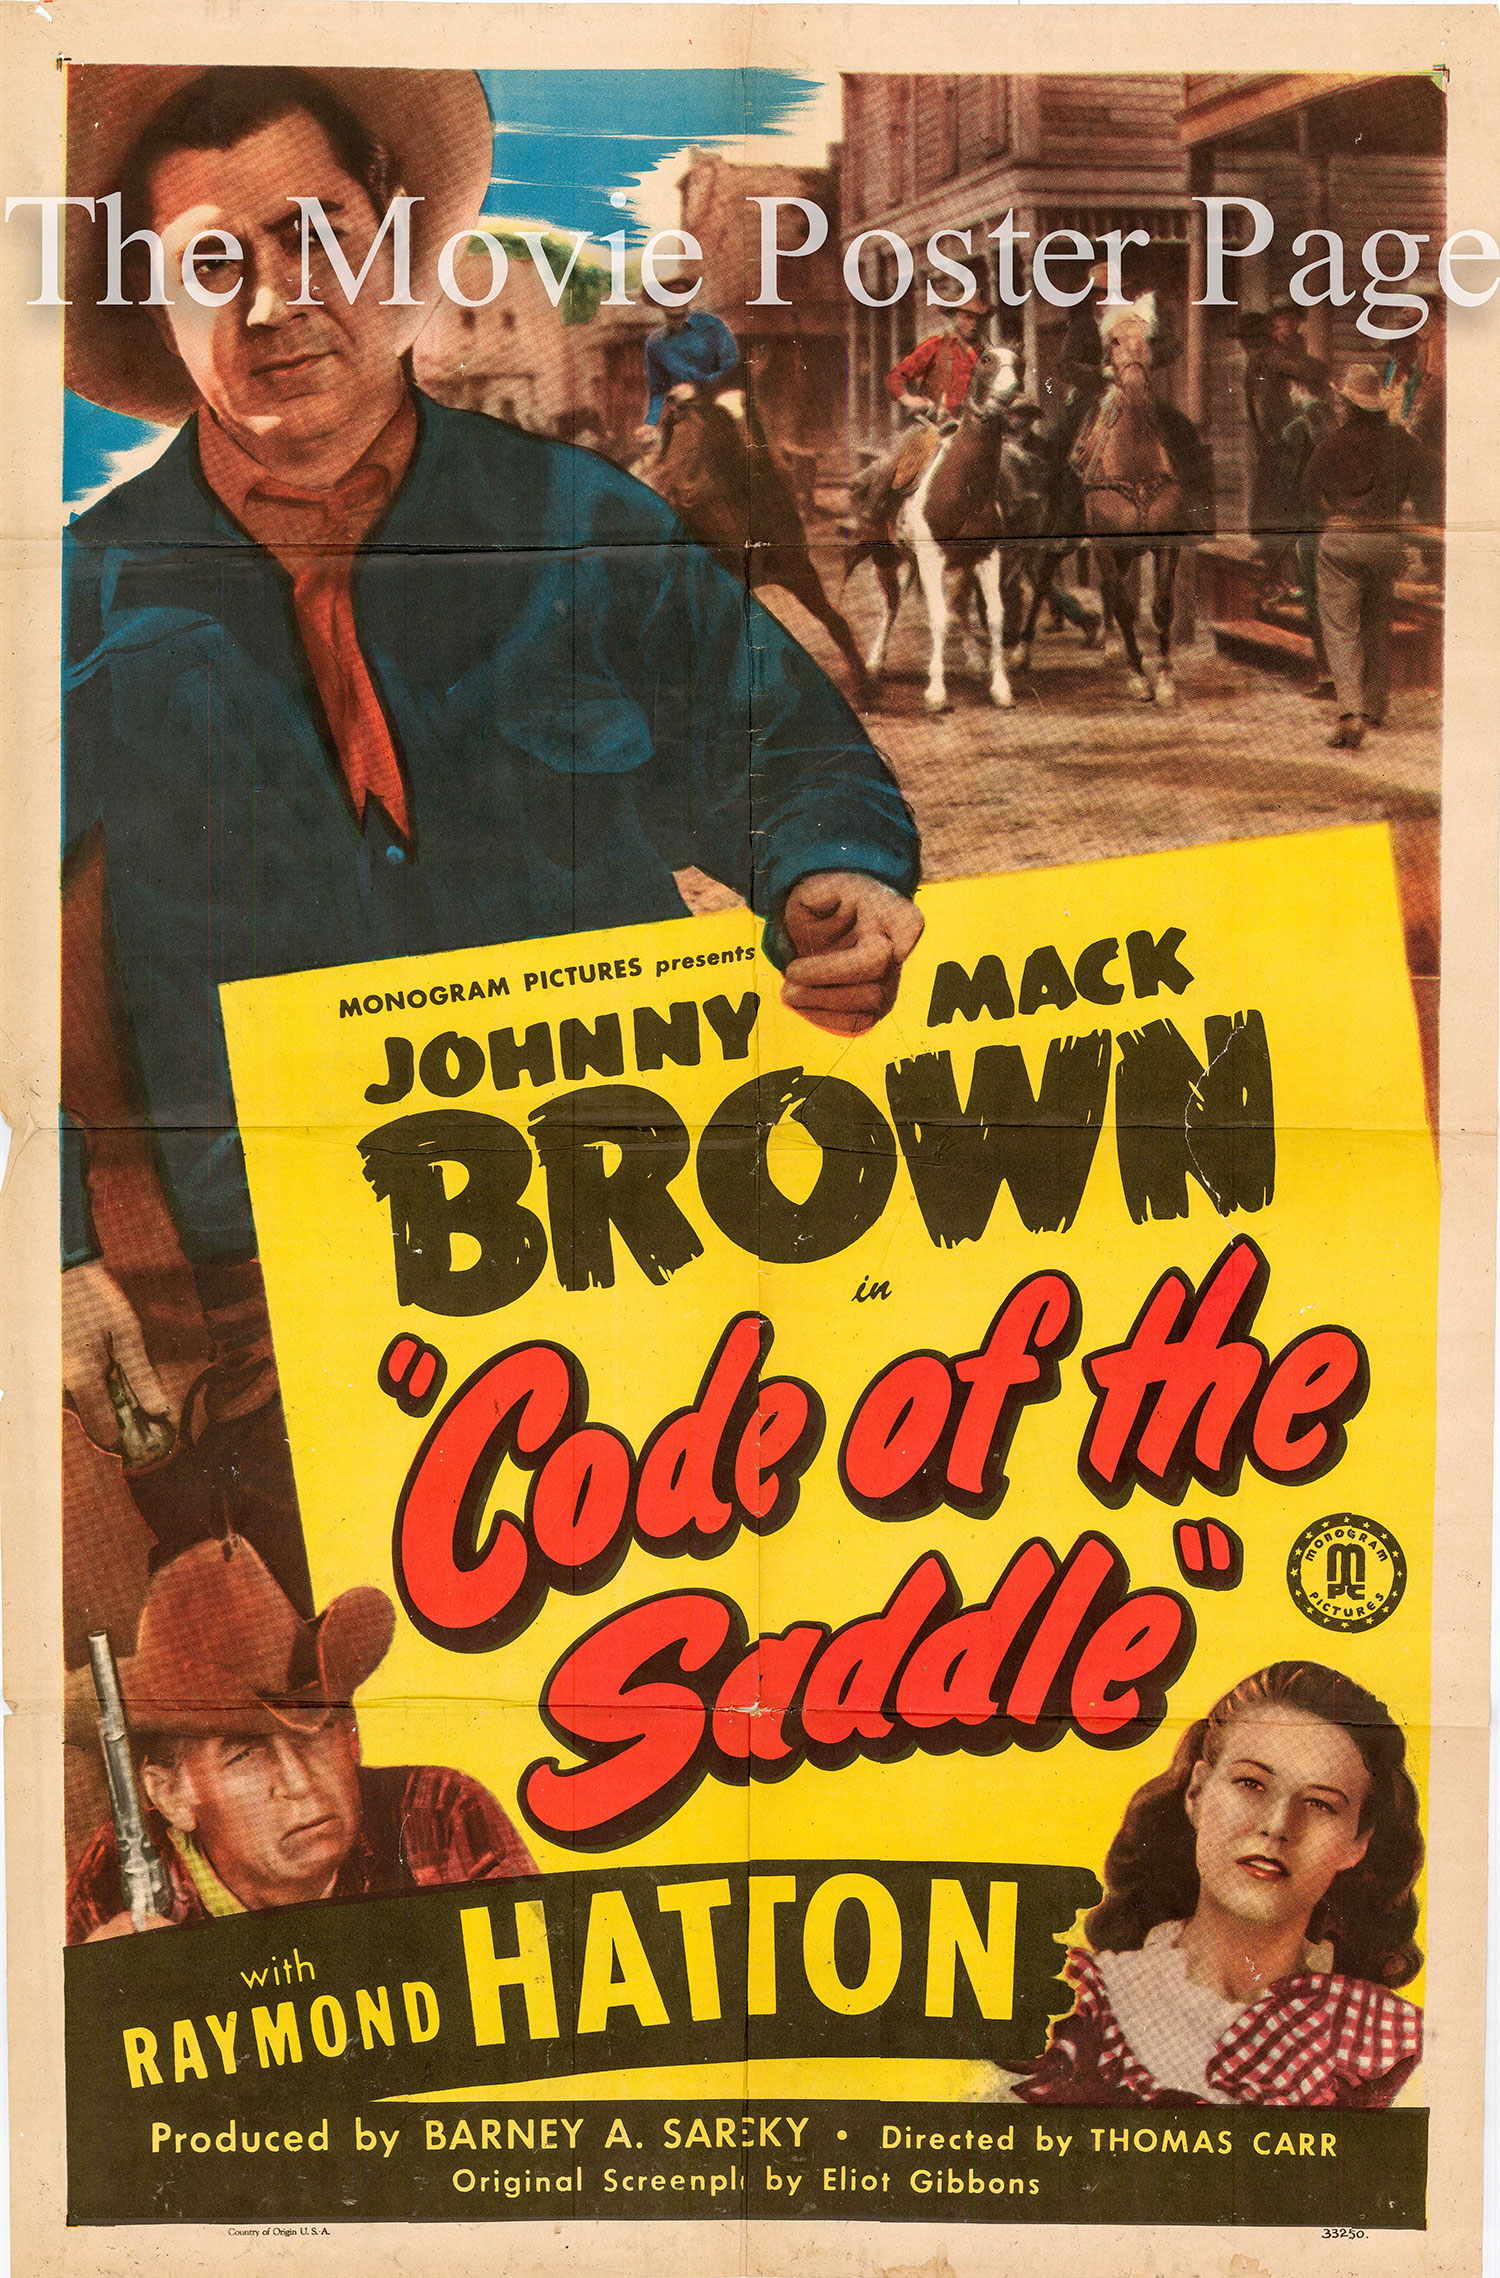 Pictured is a US one-sheet promotional poster for the 1947 Thomas Carr film Code of the Saddle starring Johnny Mack Brown.